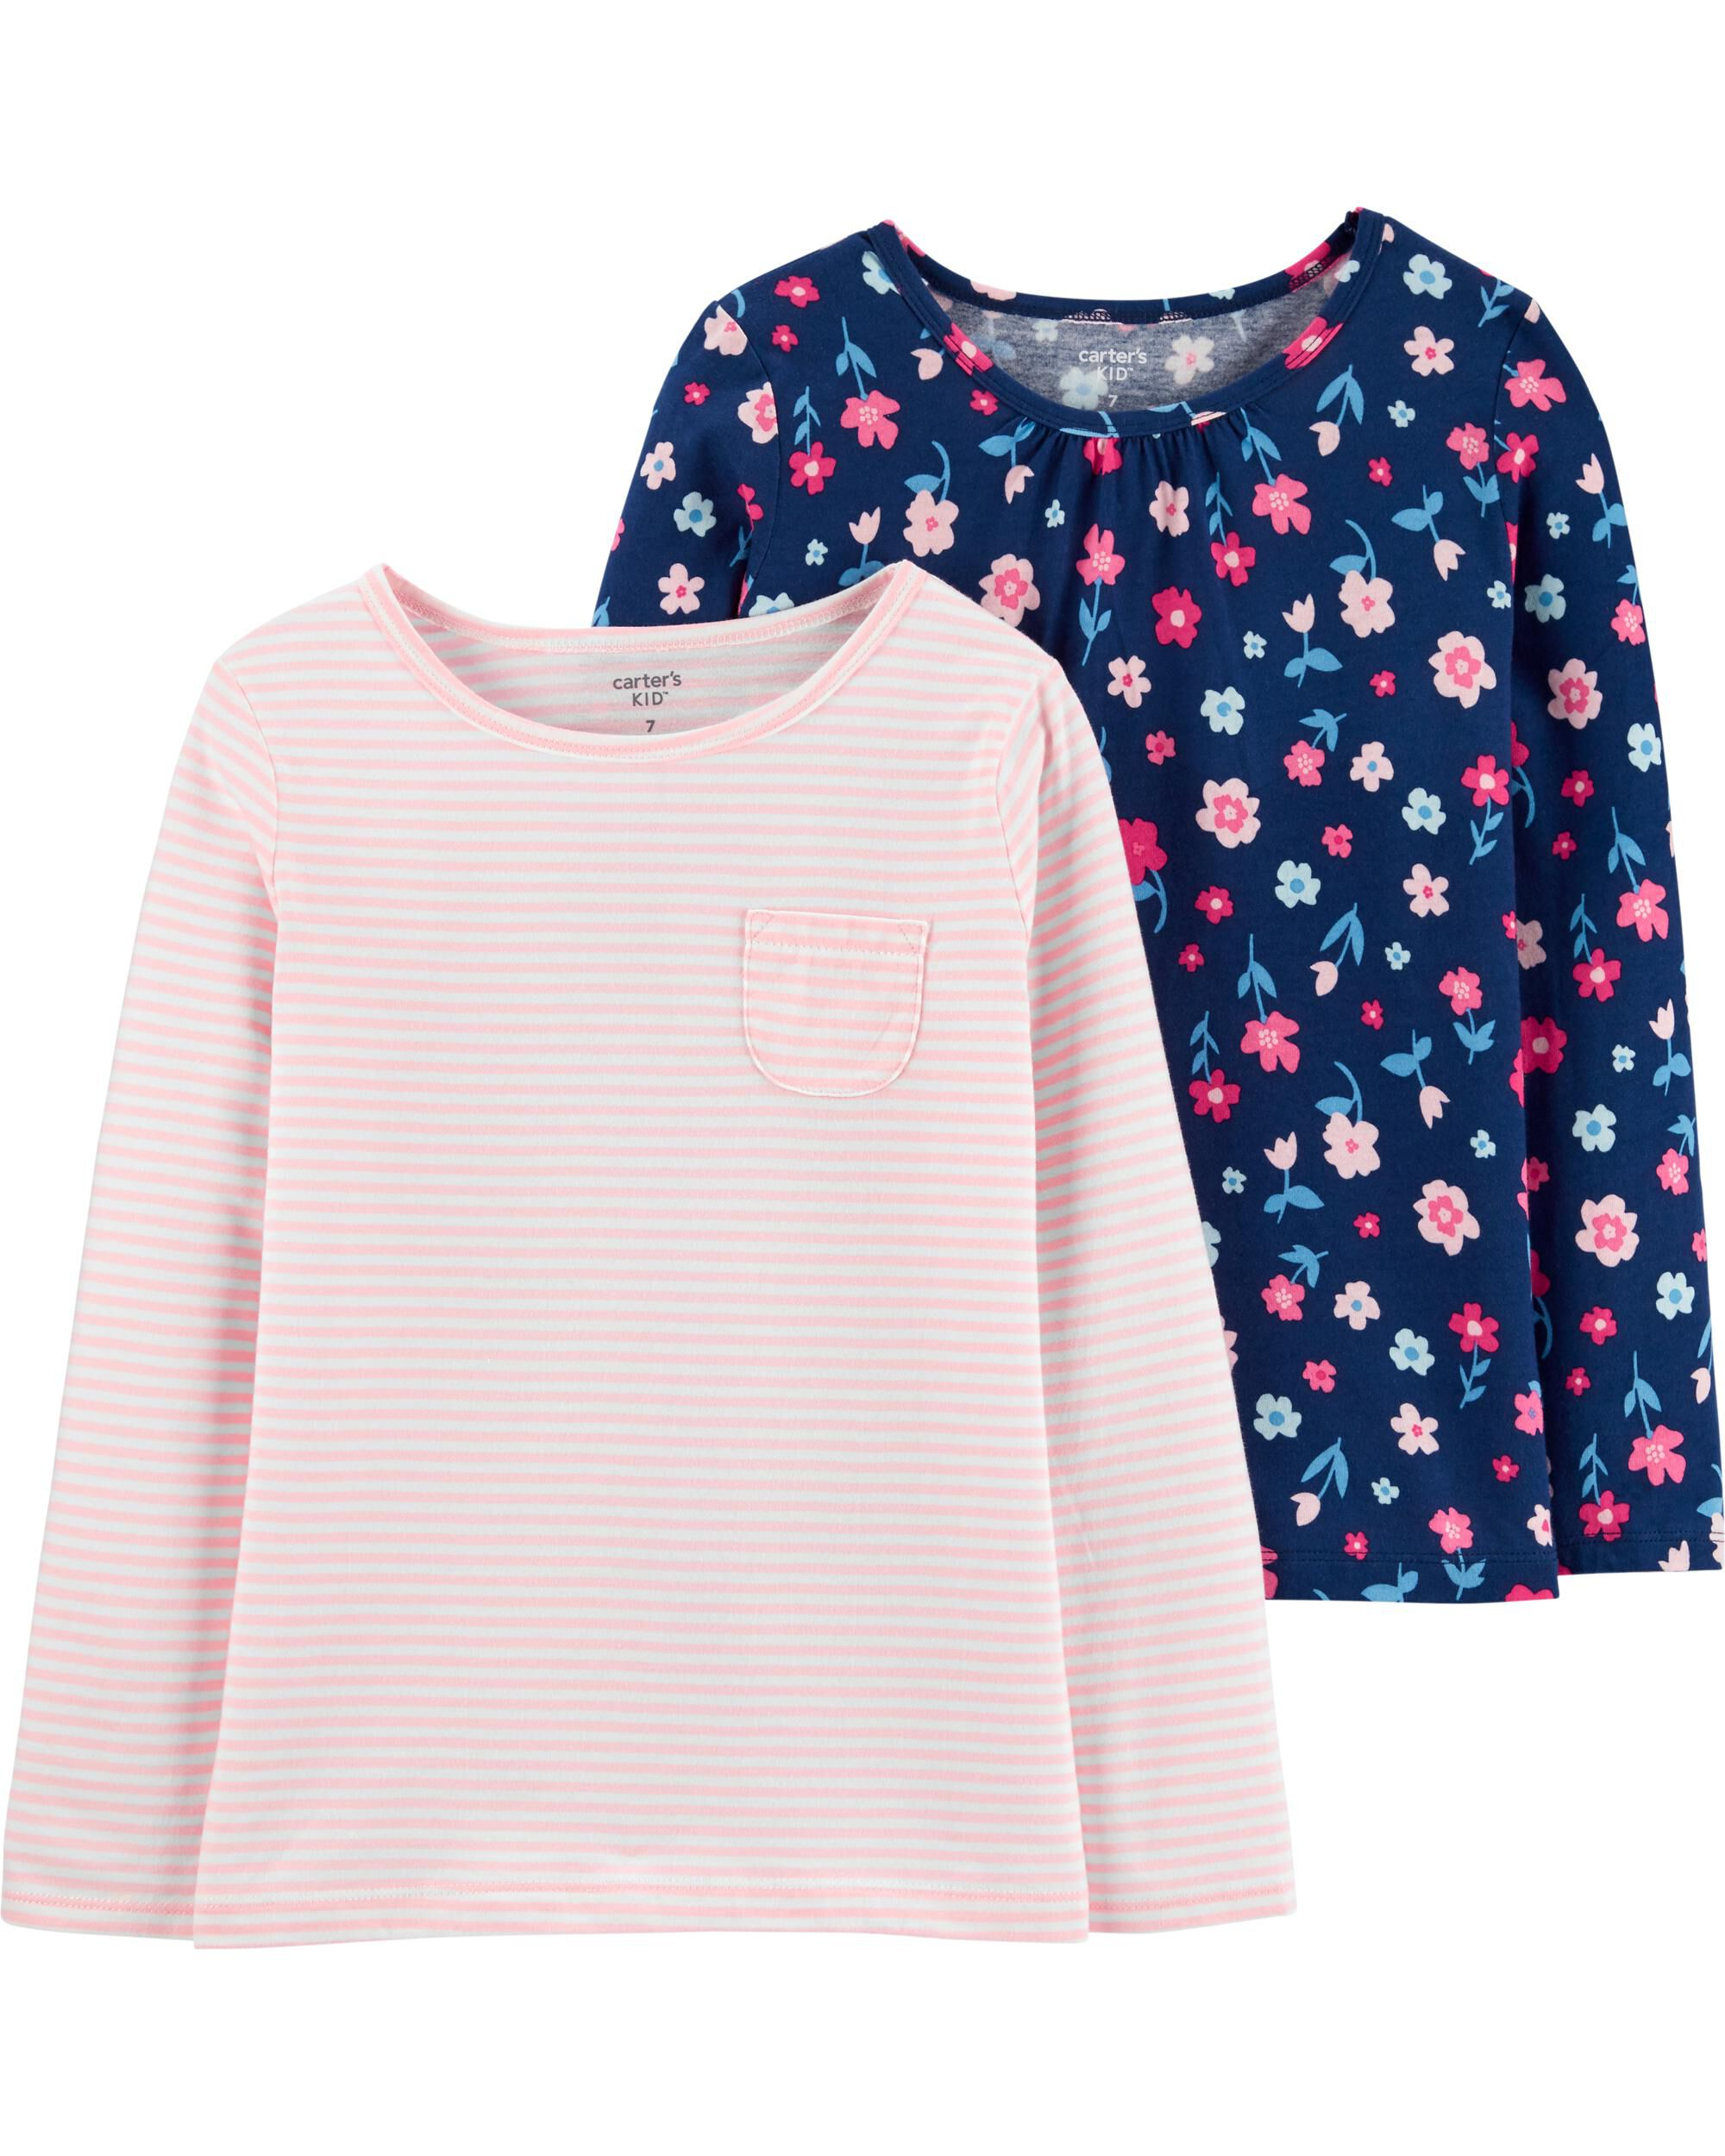 *Clearance*  2-Pack Floral & Striped Jersey Tees